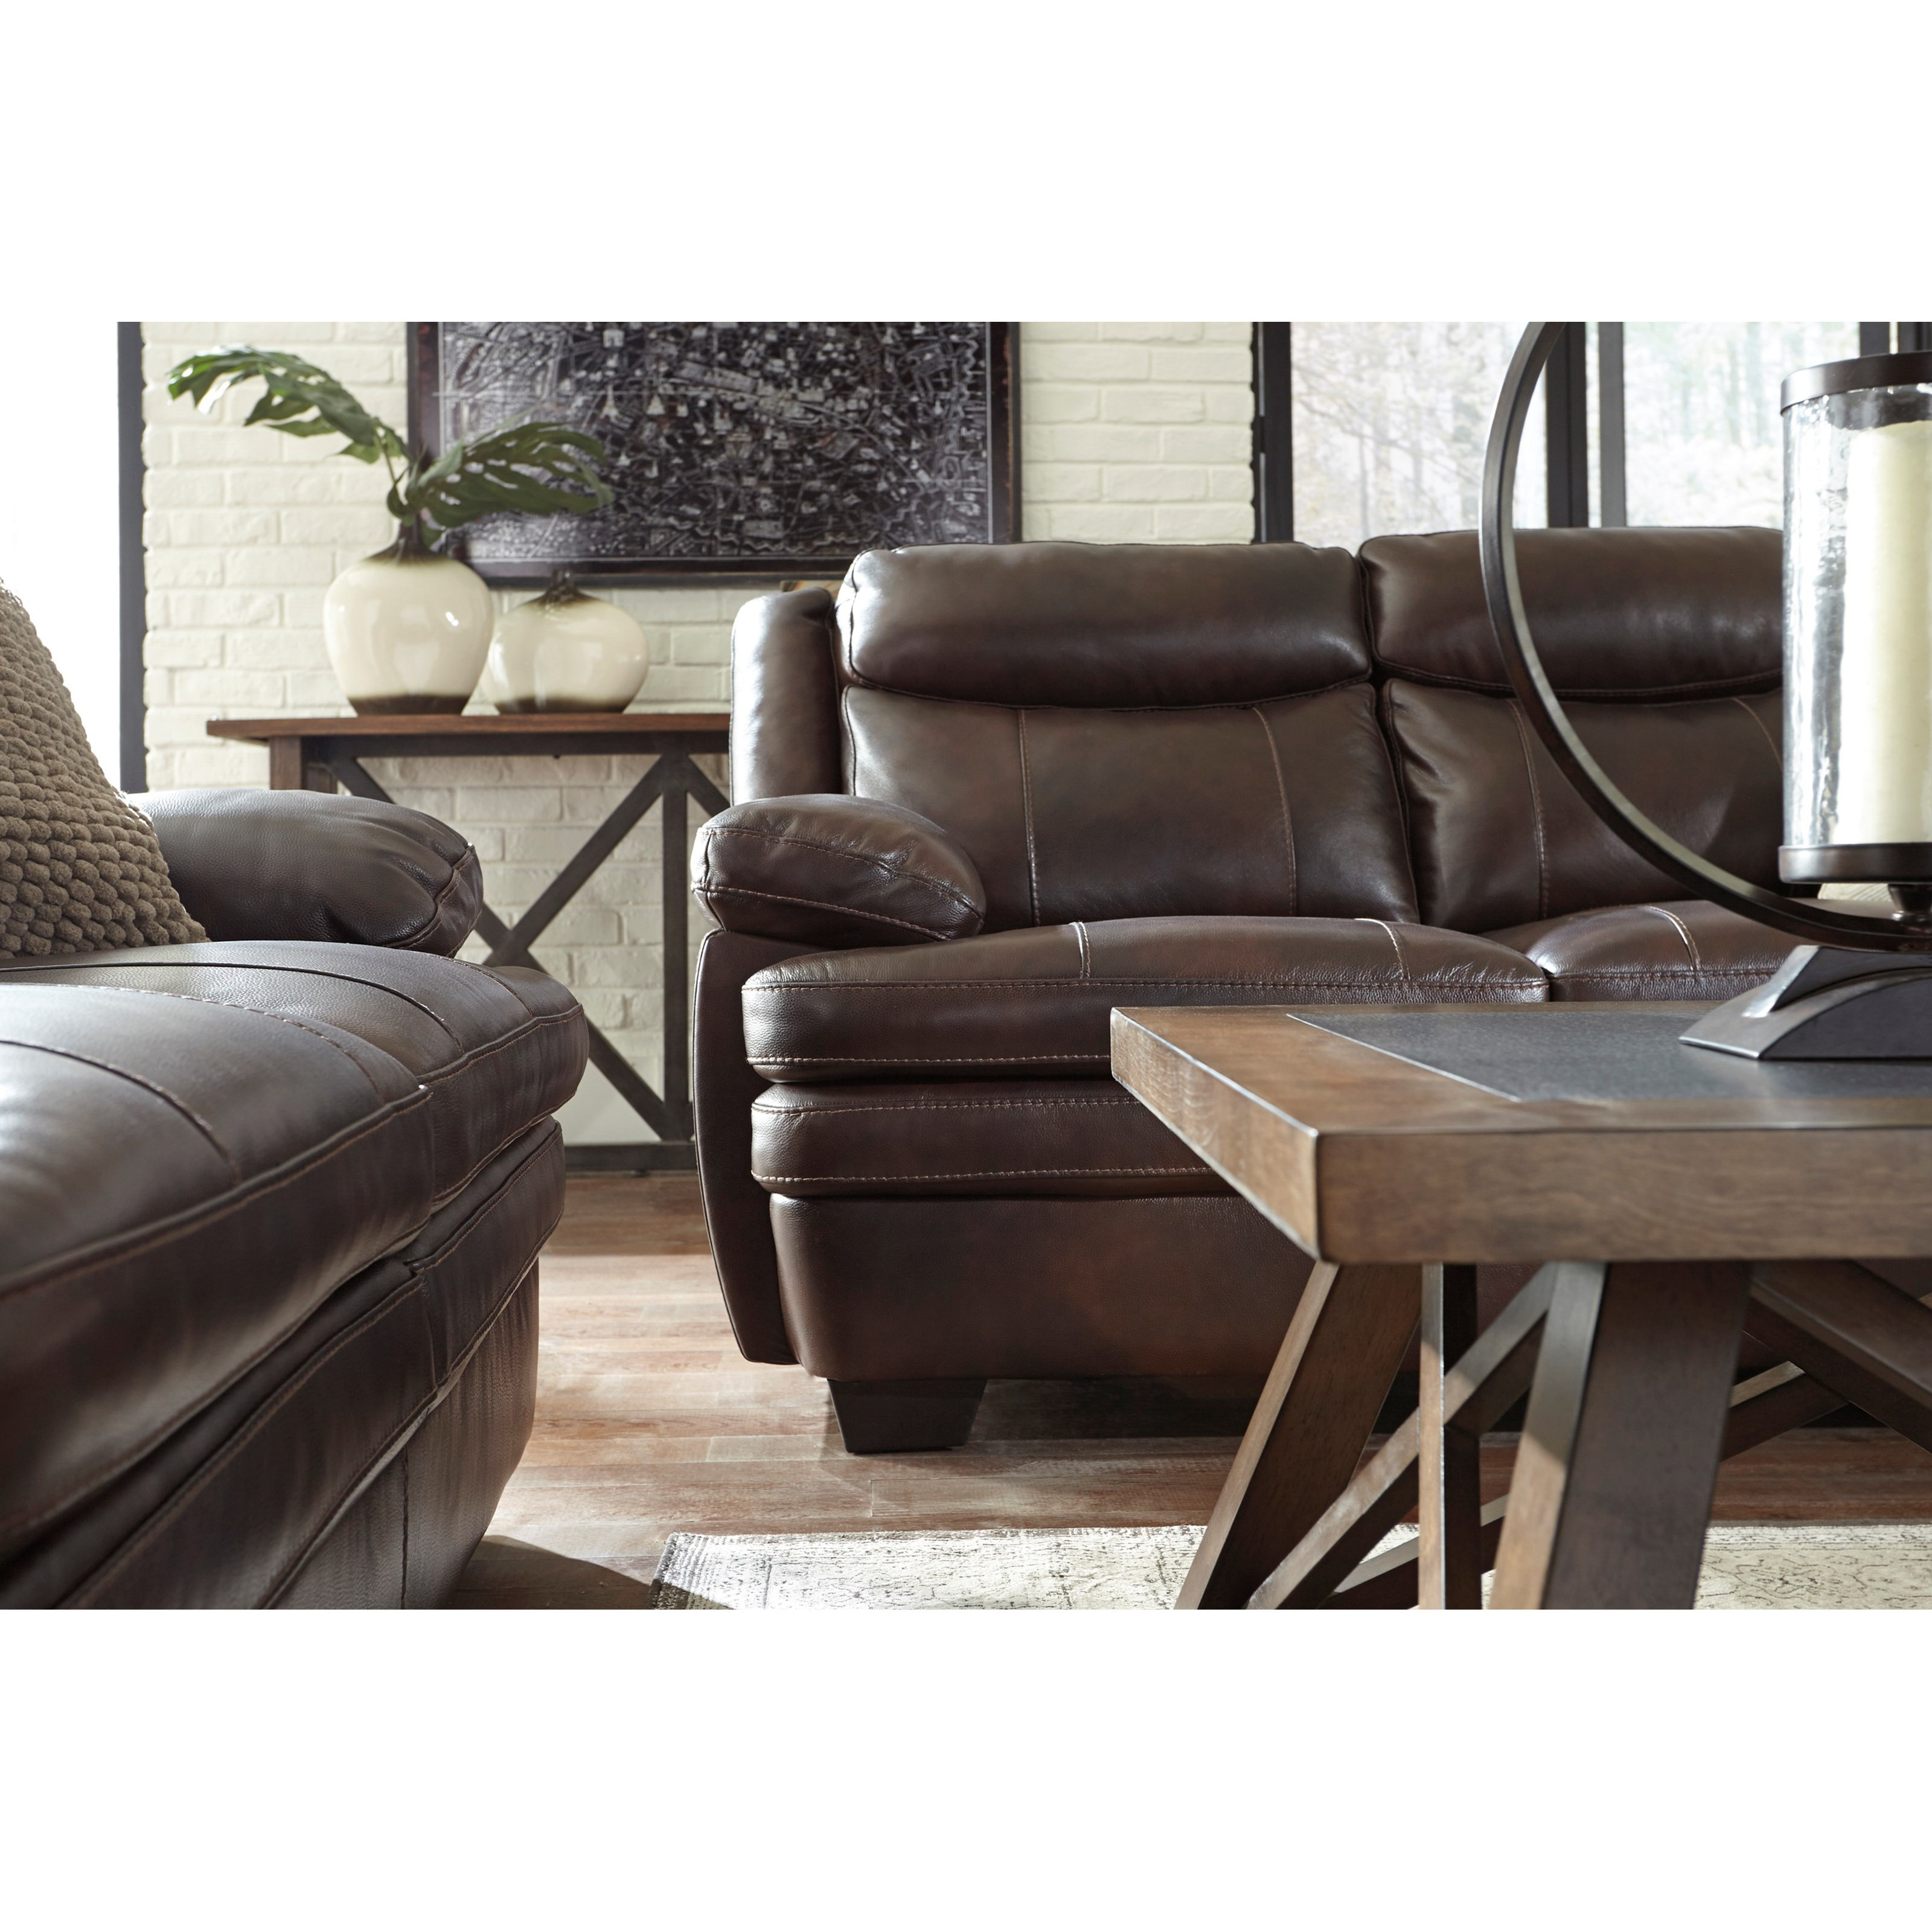 Leather Sofa Repairs Bromley: Signature Design By Ashley Hannalore Contemporary Leather